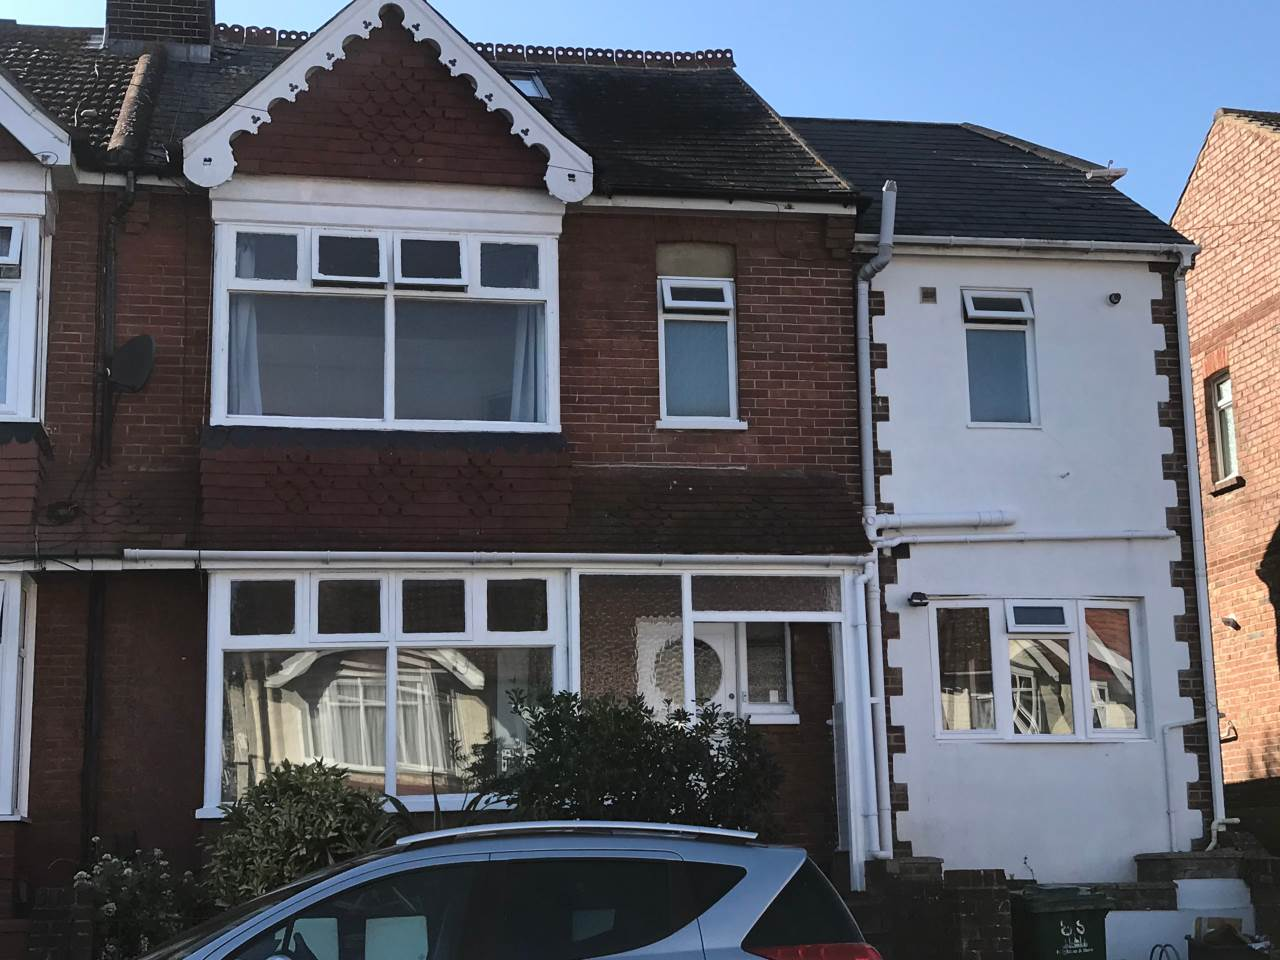 8 bed house to rent in Hollingdean Terrace, Brighton, BN1